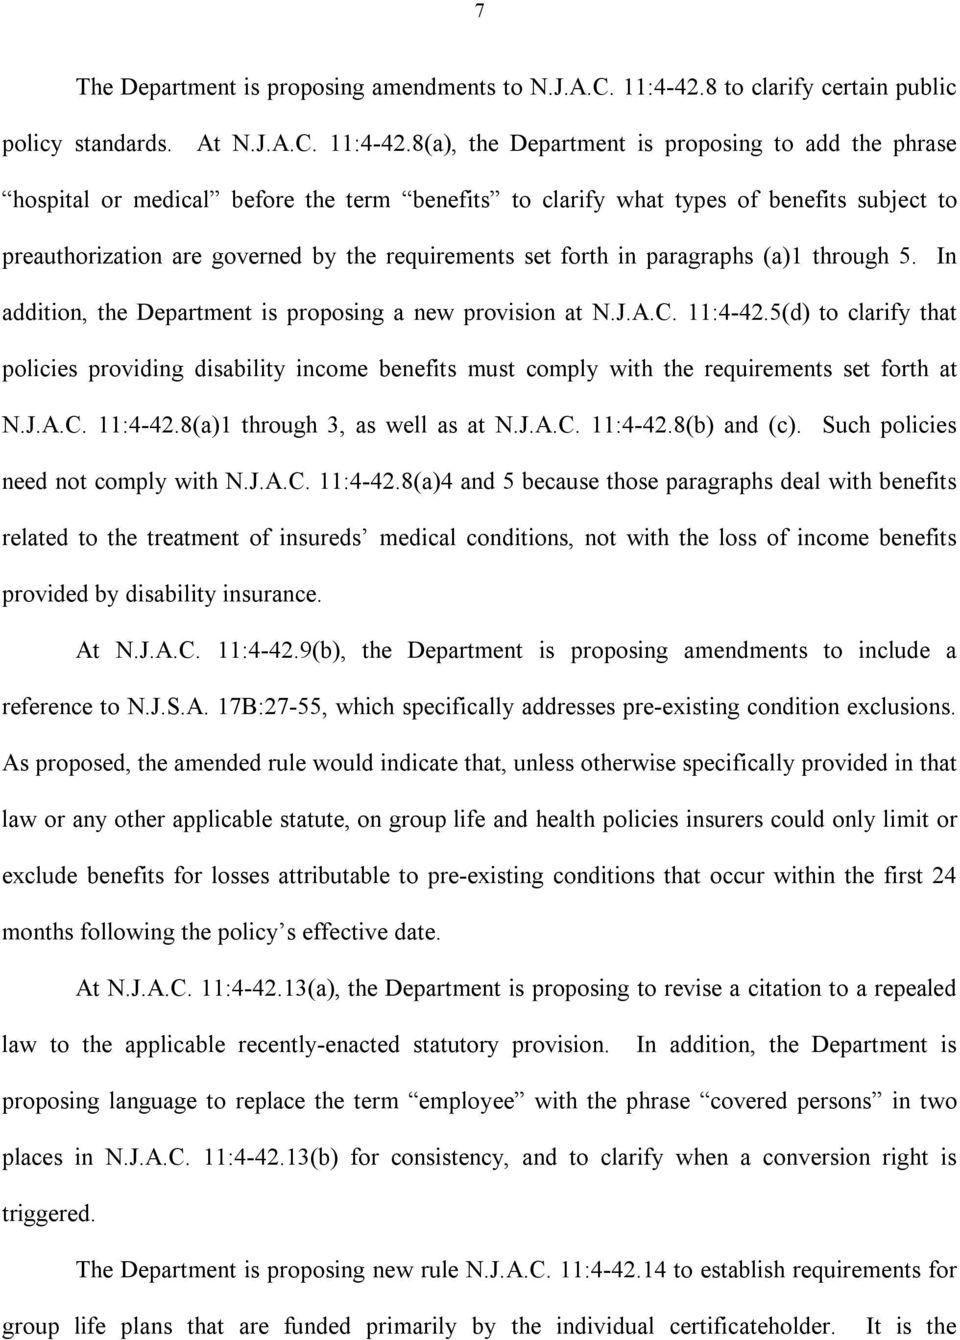 8(a), the Department is proposing to add the phrase hospital or medical before the term benefits to clarify what types of benefits subject to preauthorization are governed by the requirements set